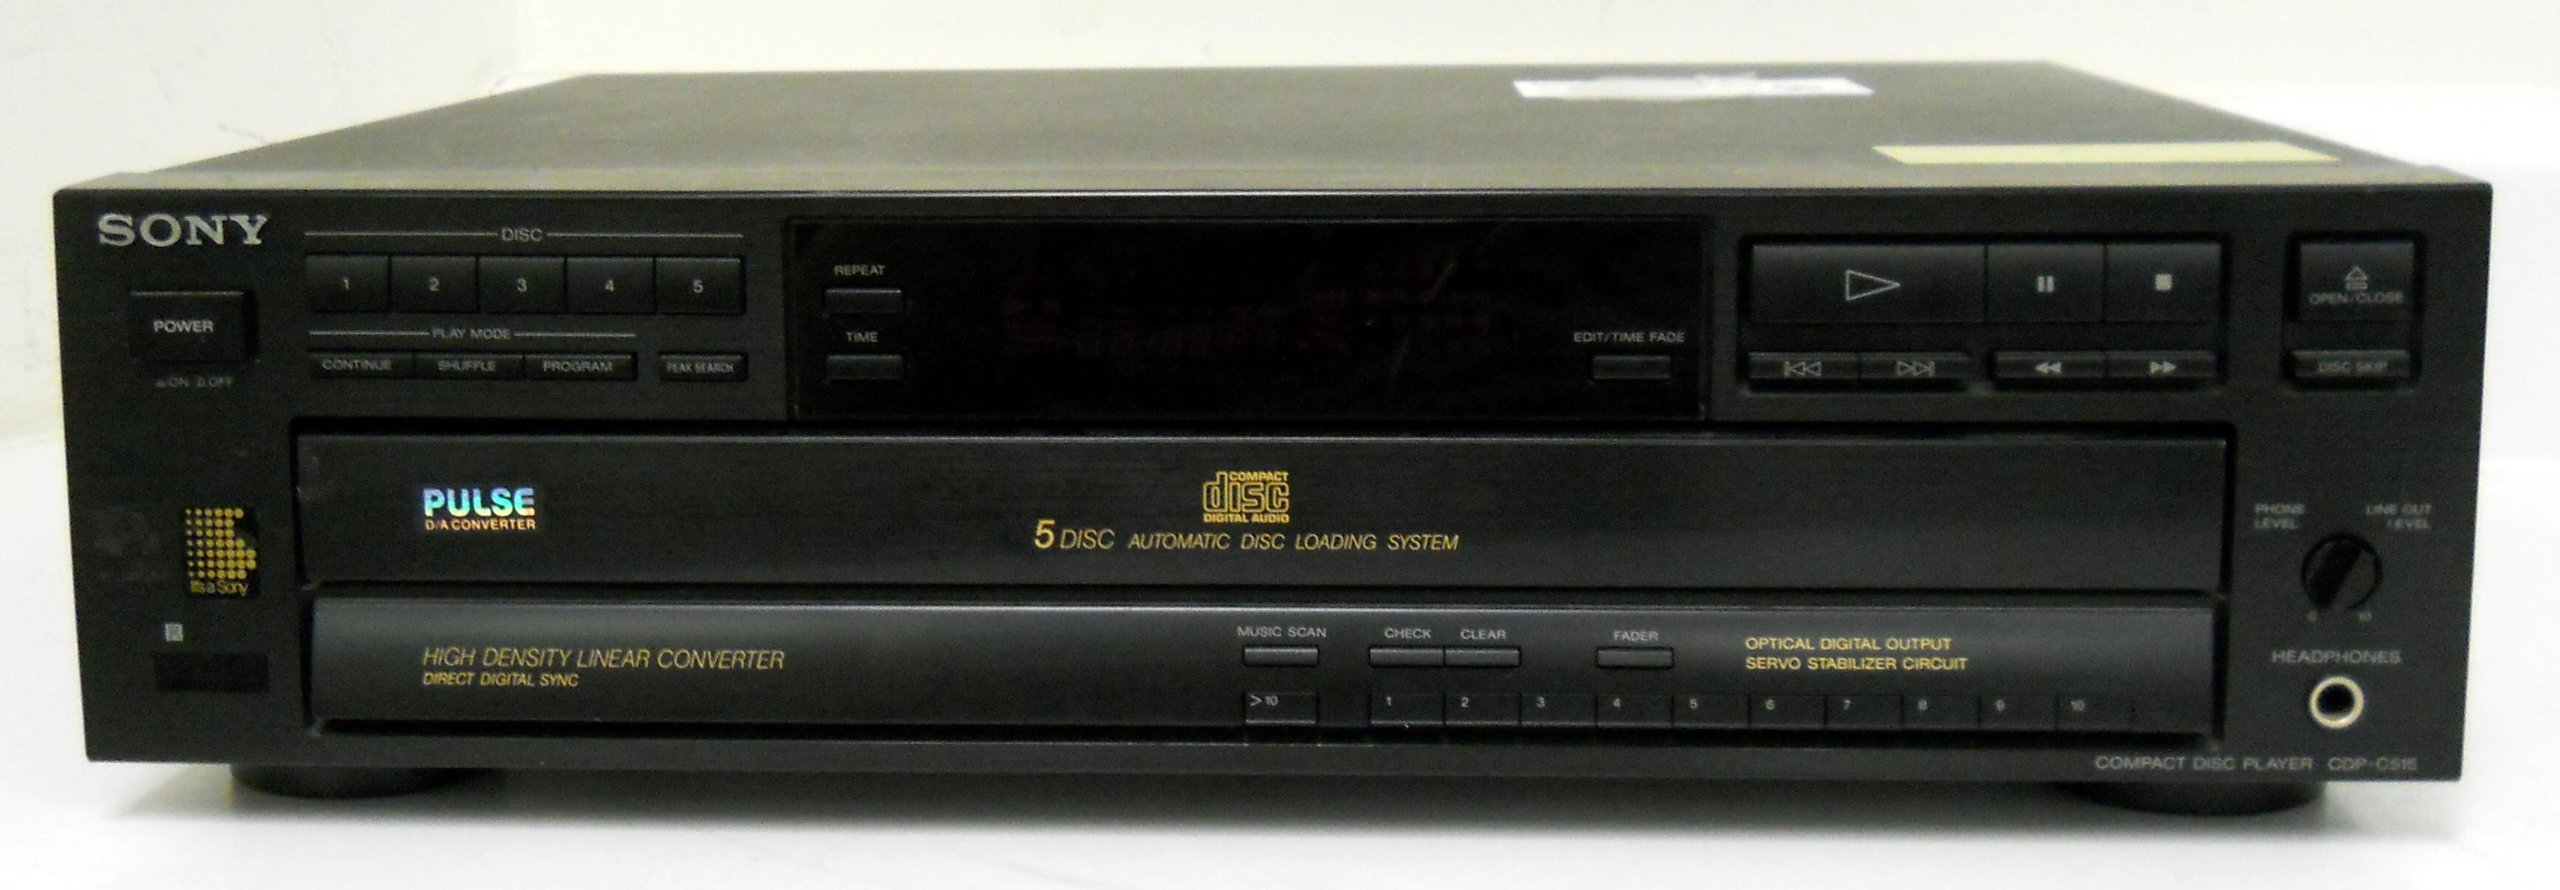 Sony CDP-C515 Compact Disc Player CD 5 Disc Changer Automatic Disc Loading System